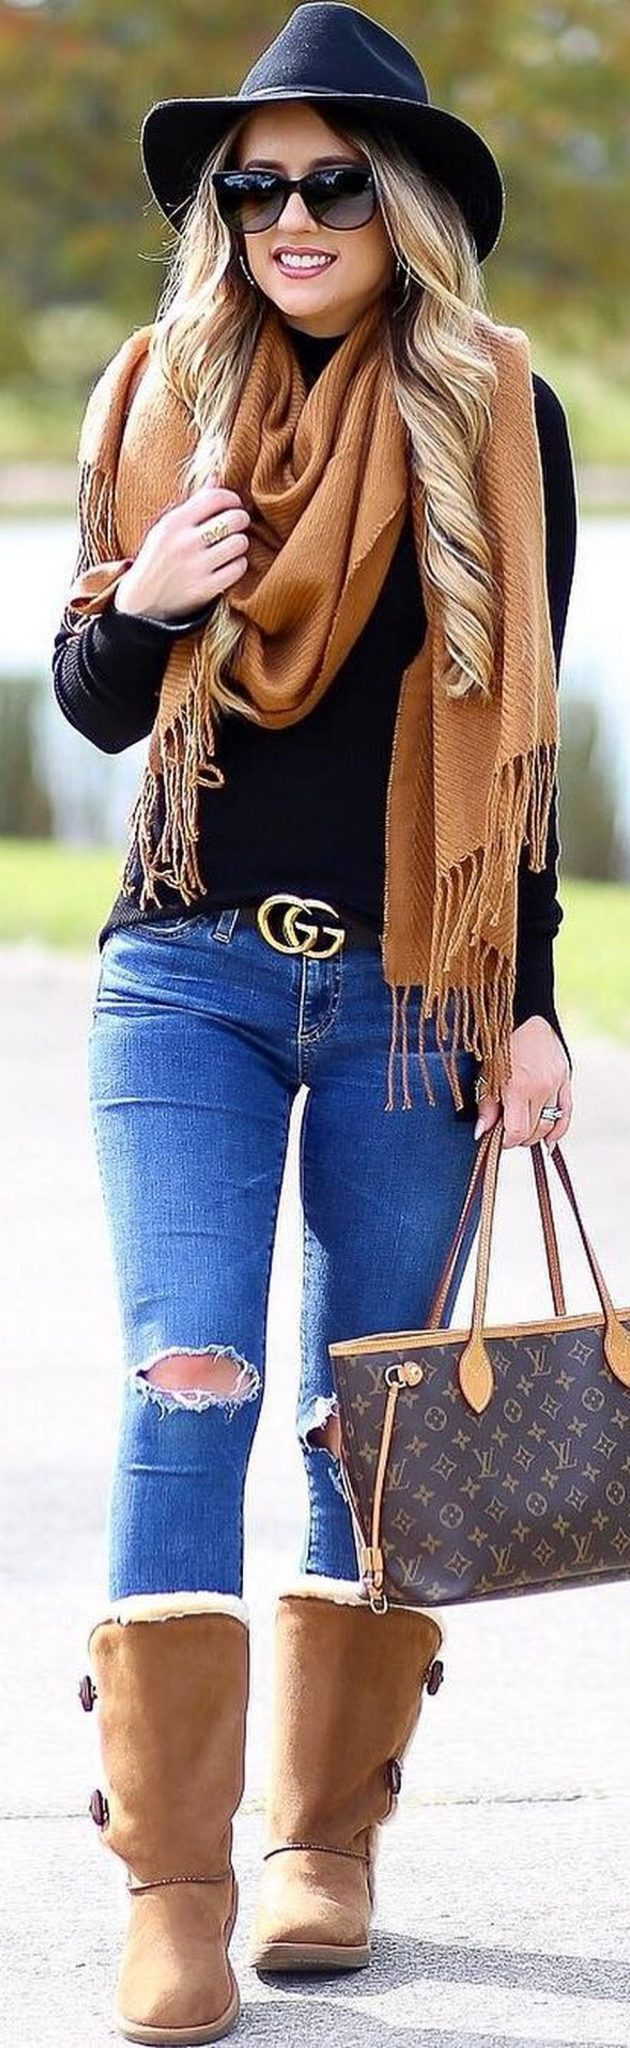 Fashionable Women Hats For Winter And Snow Outfits 74 -7926